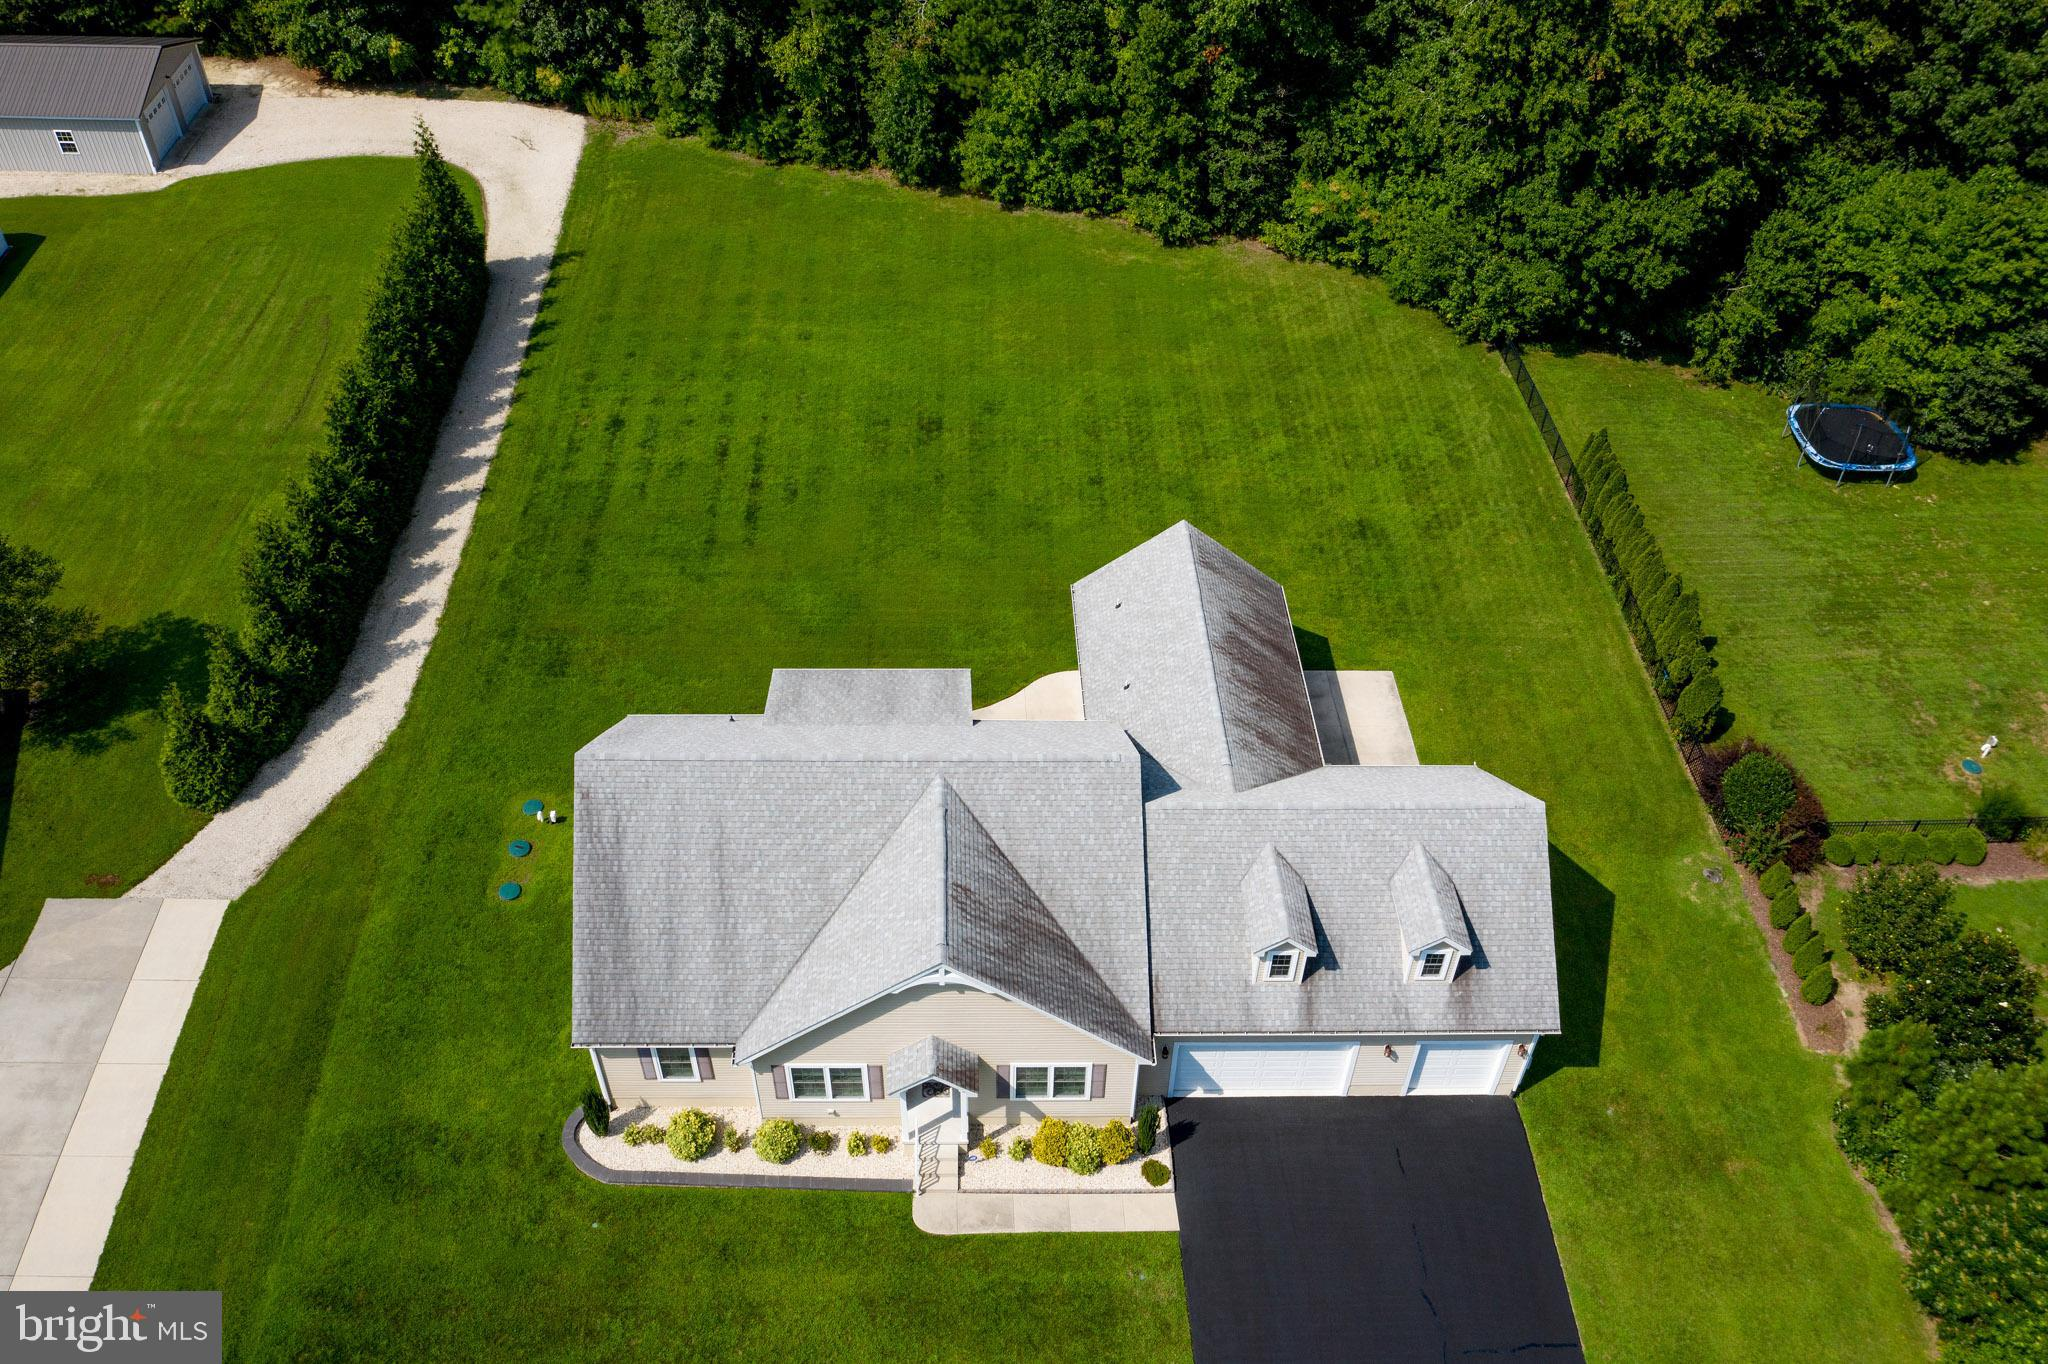 This delightful one owner home  is 8 years young, almost  1 acre of land, in a private cul-de-sac community AND  just 7 miles from Route 1 / Lewes area!  This 2300 sq ft. home with  3 beds, 2 full baths & an over sized  3 car garage has so much to offer -  9 ft ceilings, hardwood floors throughout  (except the bedrooms), Custom 3 inch Plantation Shutters on all windows, ceiling fans in every room,  lighted closets,  granite counters, extensive molding - including crown molding in the primary bedroom and formal dining room! As you enter the home, Main Entry way features a sizable room (with closet),  currently used as an office and a formal dining room to the right.  Both rooms feature double doors to open or close.  Continue into the living room where you will find a dramatic 16 ft ceiling.  Gather here or open the  French doors to enjoy the 18 x 12 tiled screen porch, including ceiling fan and a pull down shade.  This room offers a lovely view of your backyard. If you prefer the sun, step down to grill and sit on the patio! The modern kitchen offers expansive granite counters & cabinet space. Ideal for families who love to cook.  Center island, lighted pantry, and breakfast area completes this dream kitchen! Home has a split bedroom floor plan. To the left of the LR are two generously sized bedrooms and a full bath including granite vanity, sleek fixtures and a transom window adding even more natural light.  The Primary Suite is generous in size with almost 400 sq ft. Plenty of room to add a sitting area.  The primary bathroom continues with space and 9 ft ceilings & features granite vanity, double sinks, His & Her closets, 2 person shower, including rain shower head.  The laundry room is roomy enough to add a folding table. From this area,  step down into the over sized three car garage (36 ' x 27 foot), with plenty of storage, including stairs to a Bonus Room.  Appreciate this upstairs unfinished canvas to create a space special to you and your family!  More stor